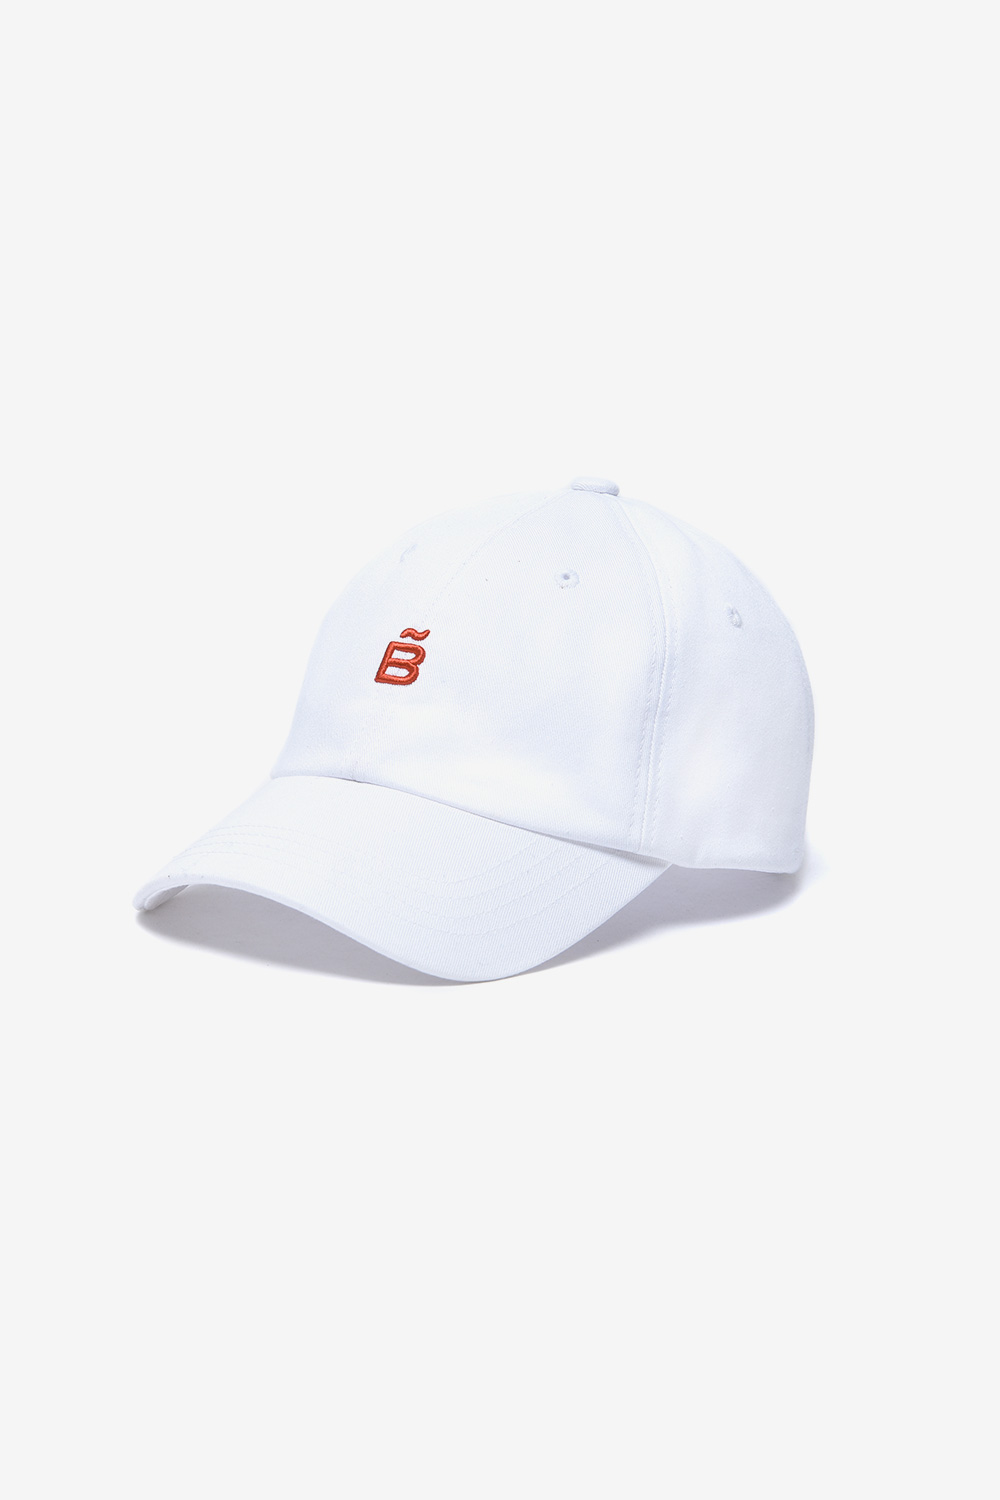 [5월 18일 배송] Slow B Basic Ball Cap_White BS0SCP501WH00F